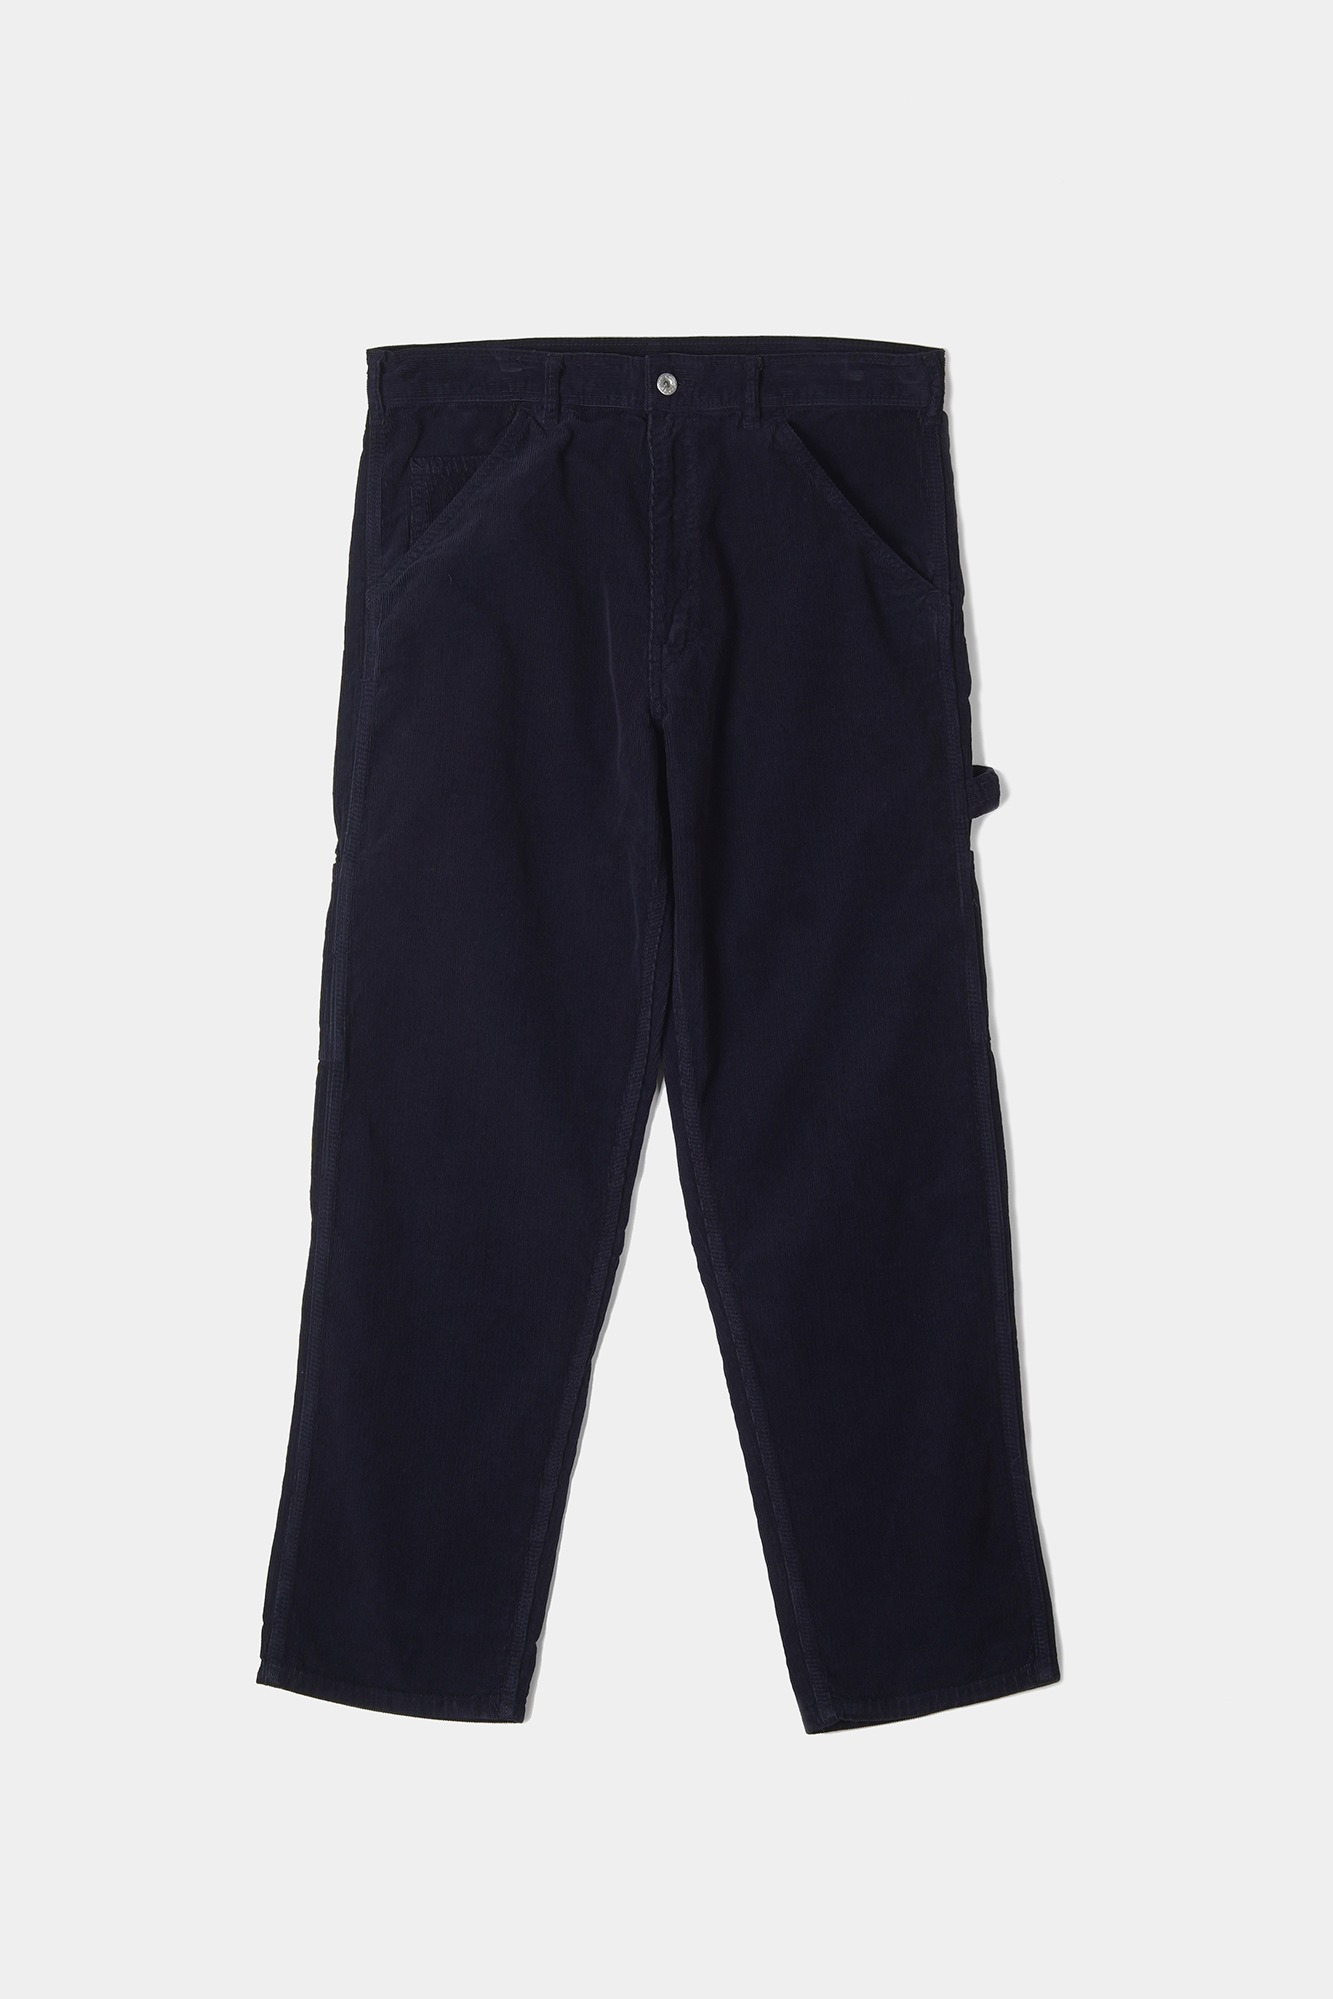 "STAN RAY OG Painter Pants Cord ""Navy Cord"""